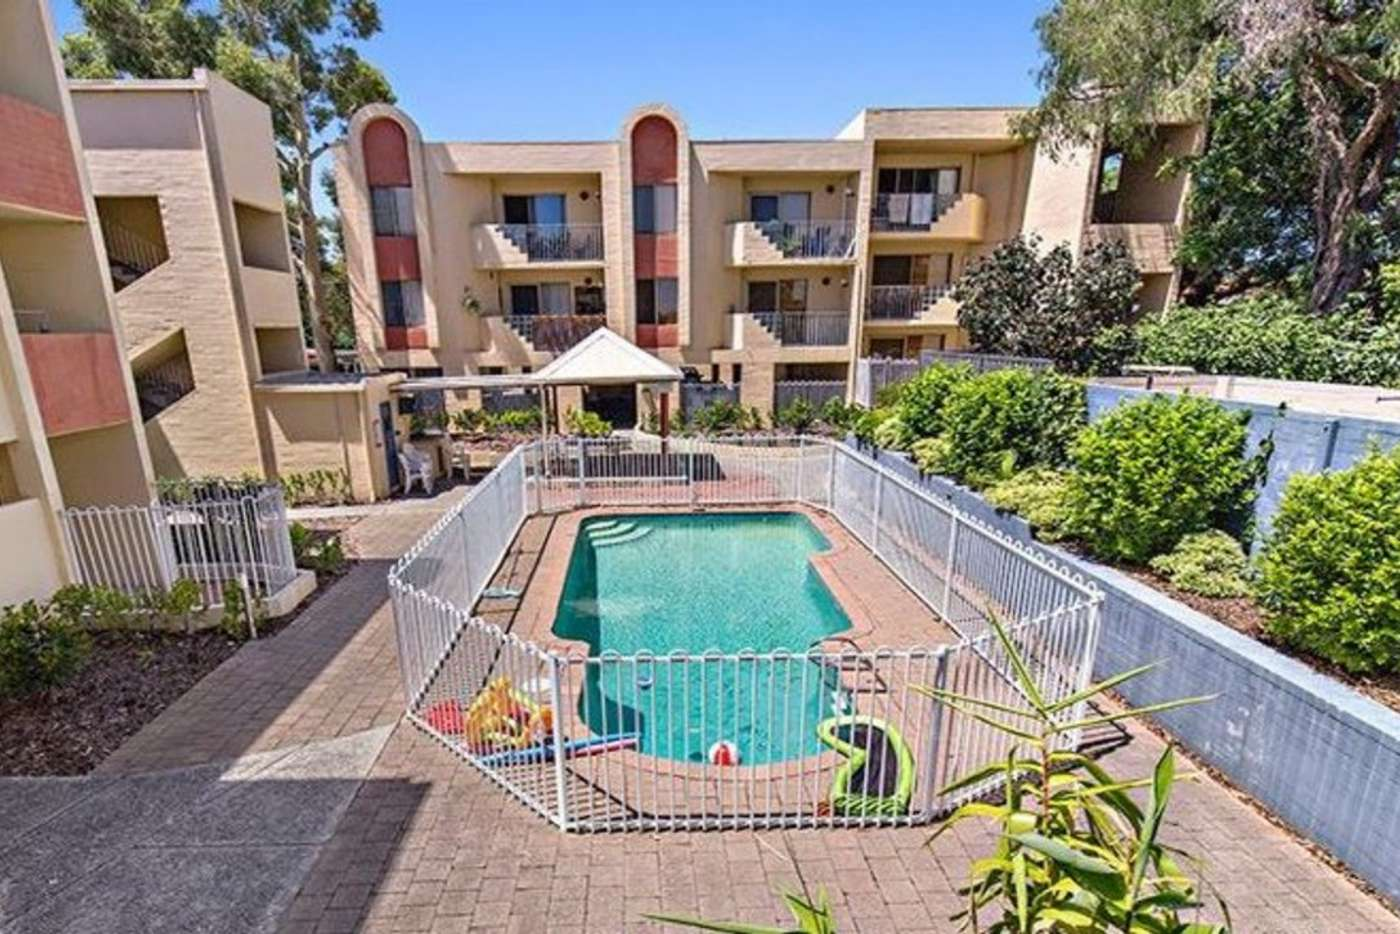 Main view of Homely apartment listing, 6/61 Elizabeth Street, South Perth WA 6151